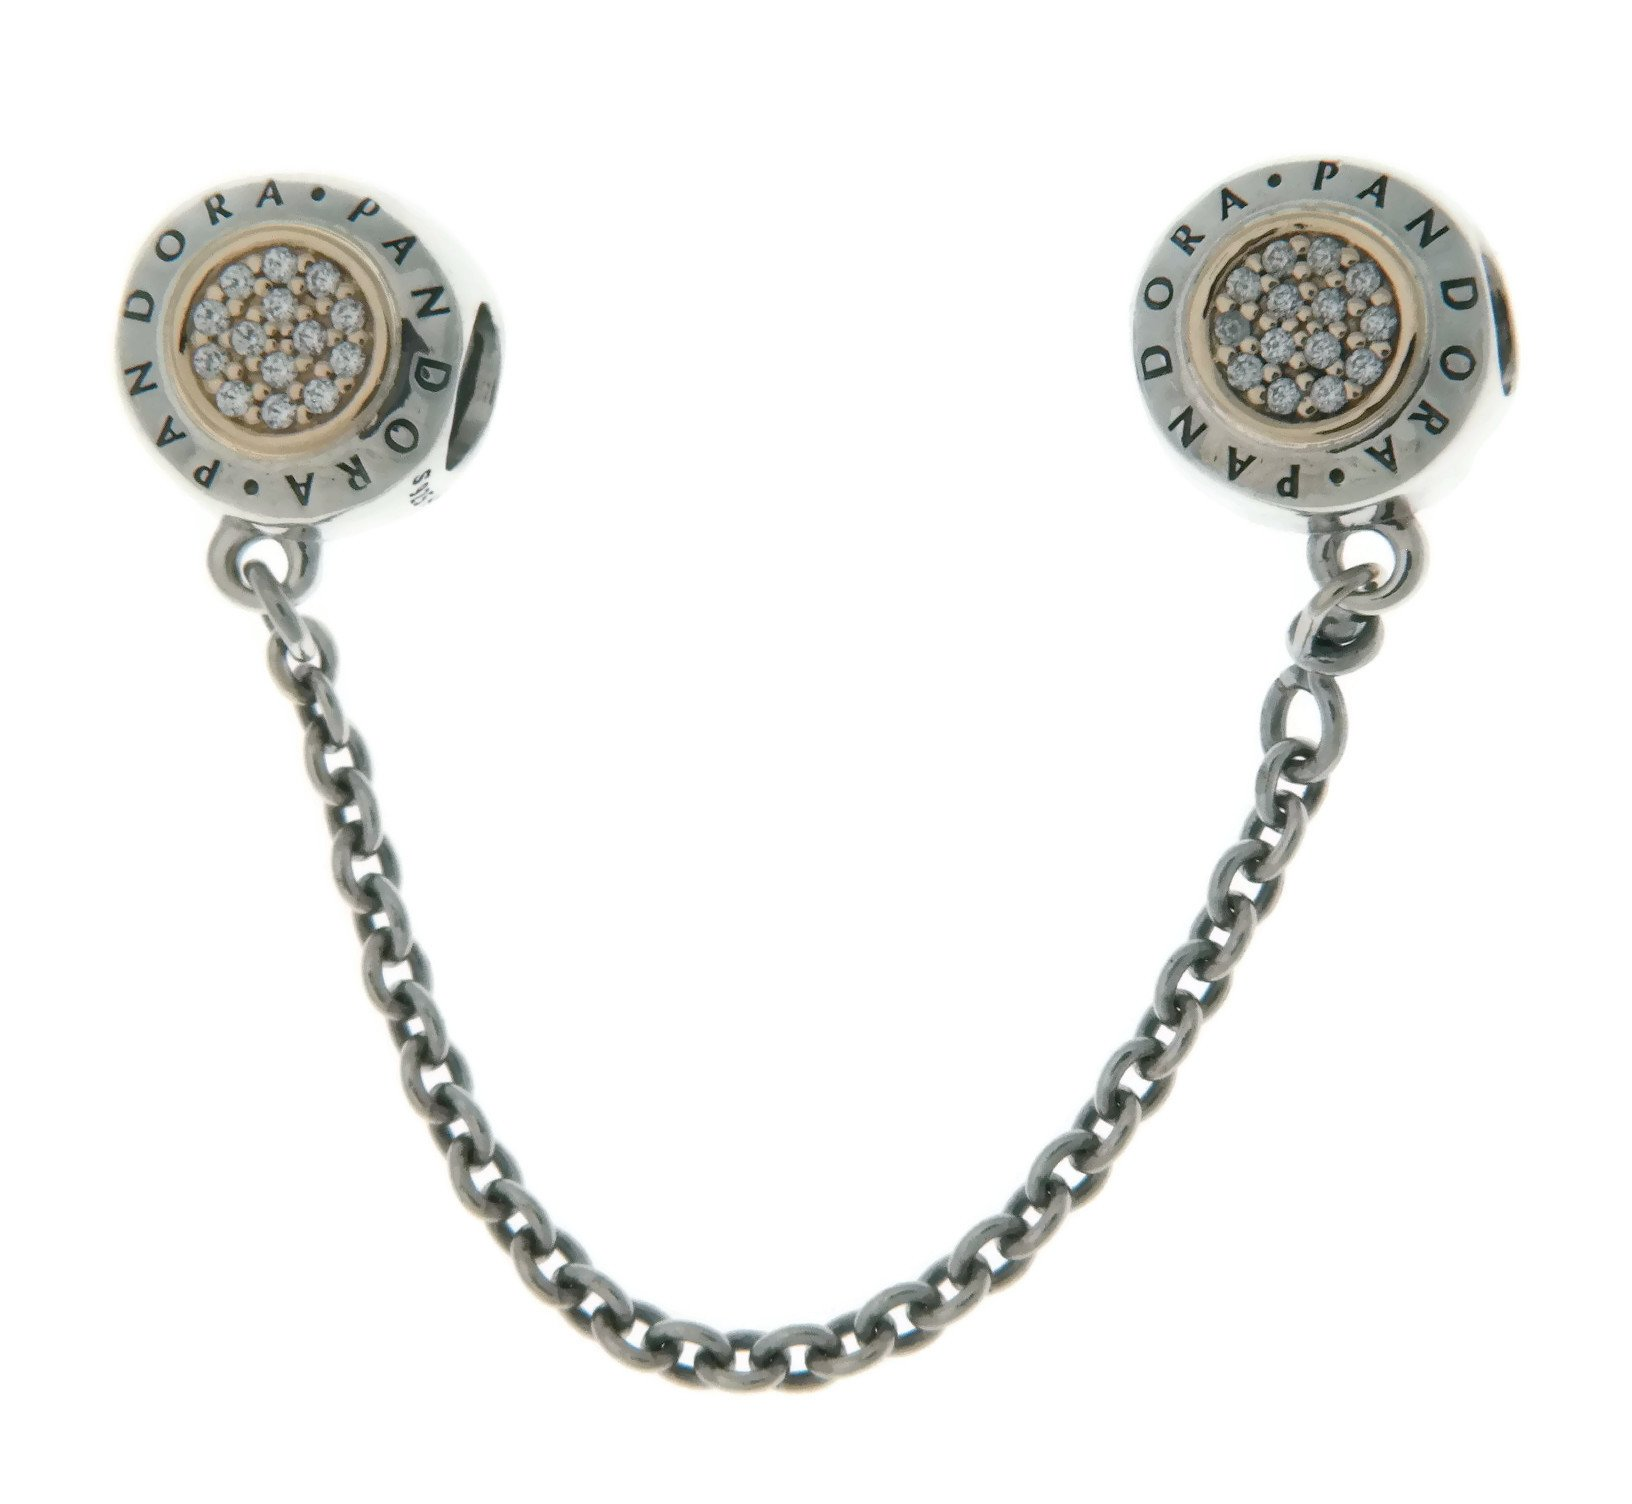 PANDORA Logo Safety Chain in Sterling Silver with 14k Gold and Clear Cubic Zirconia - 796269CZ-05